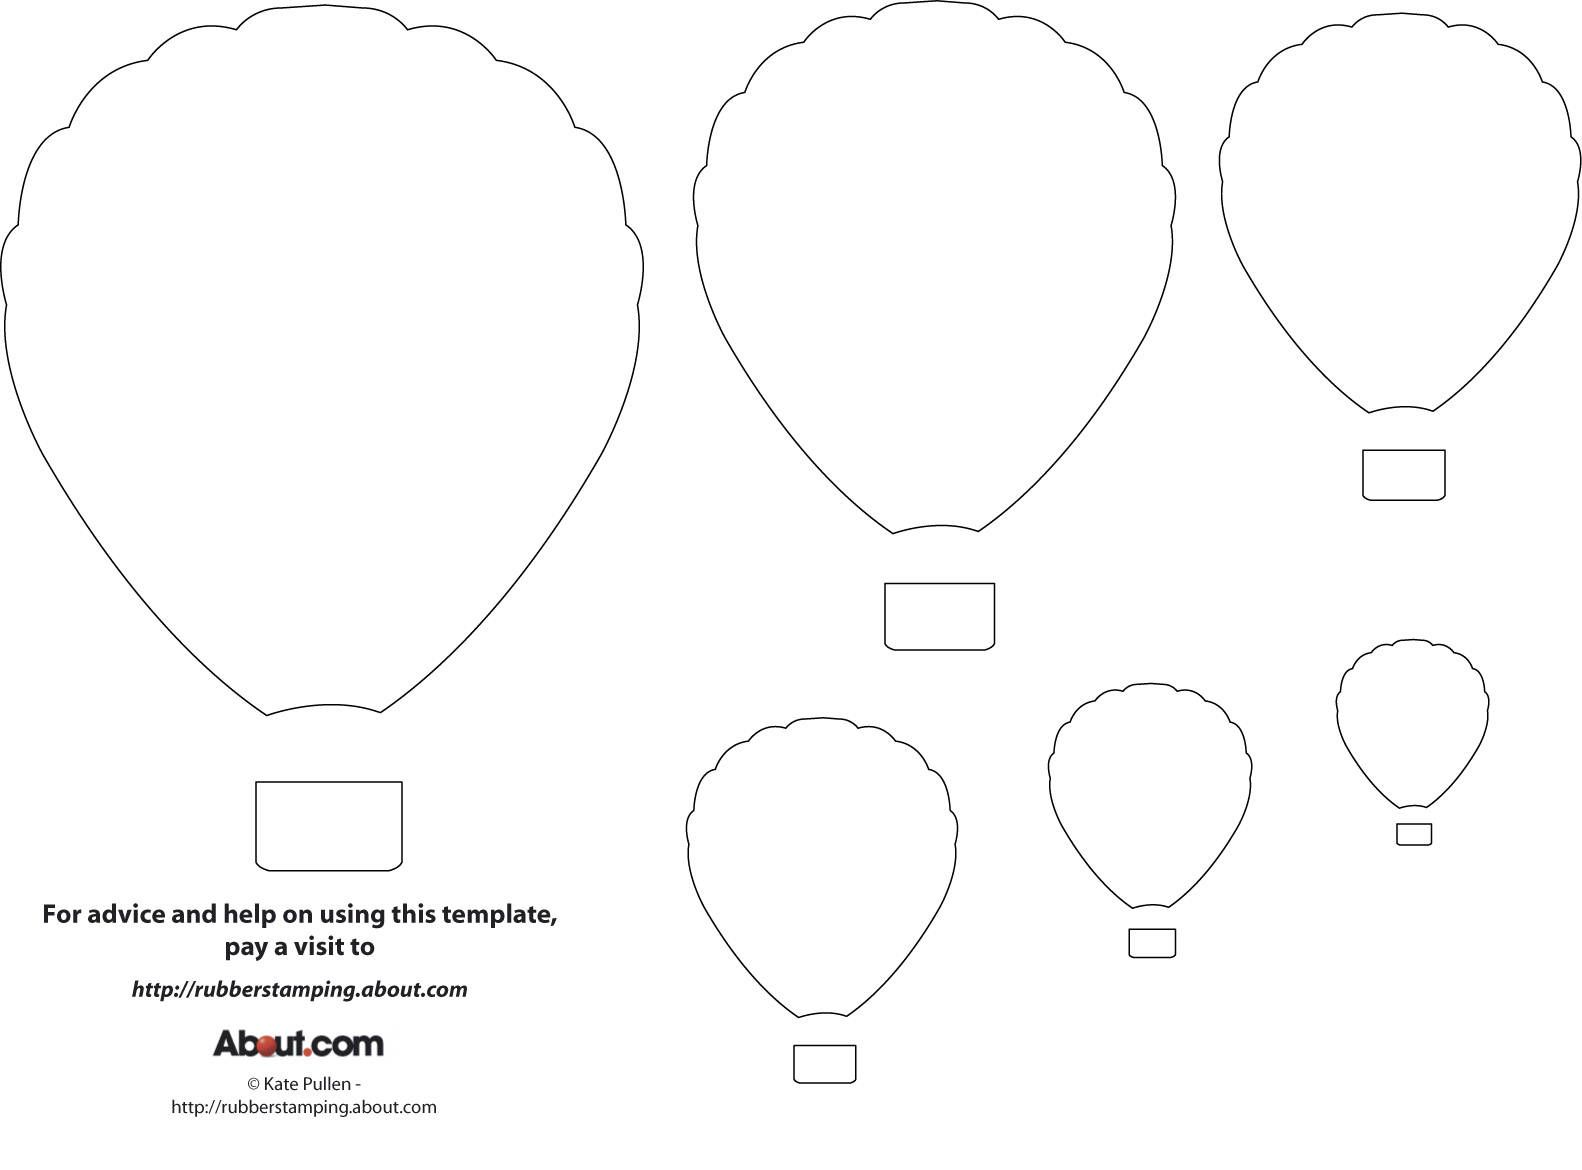 Hot Air Balloon Template on car panel board